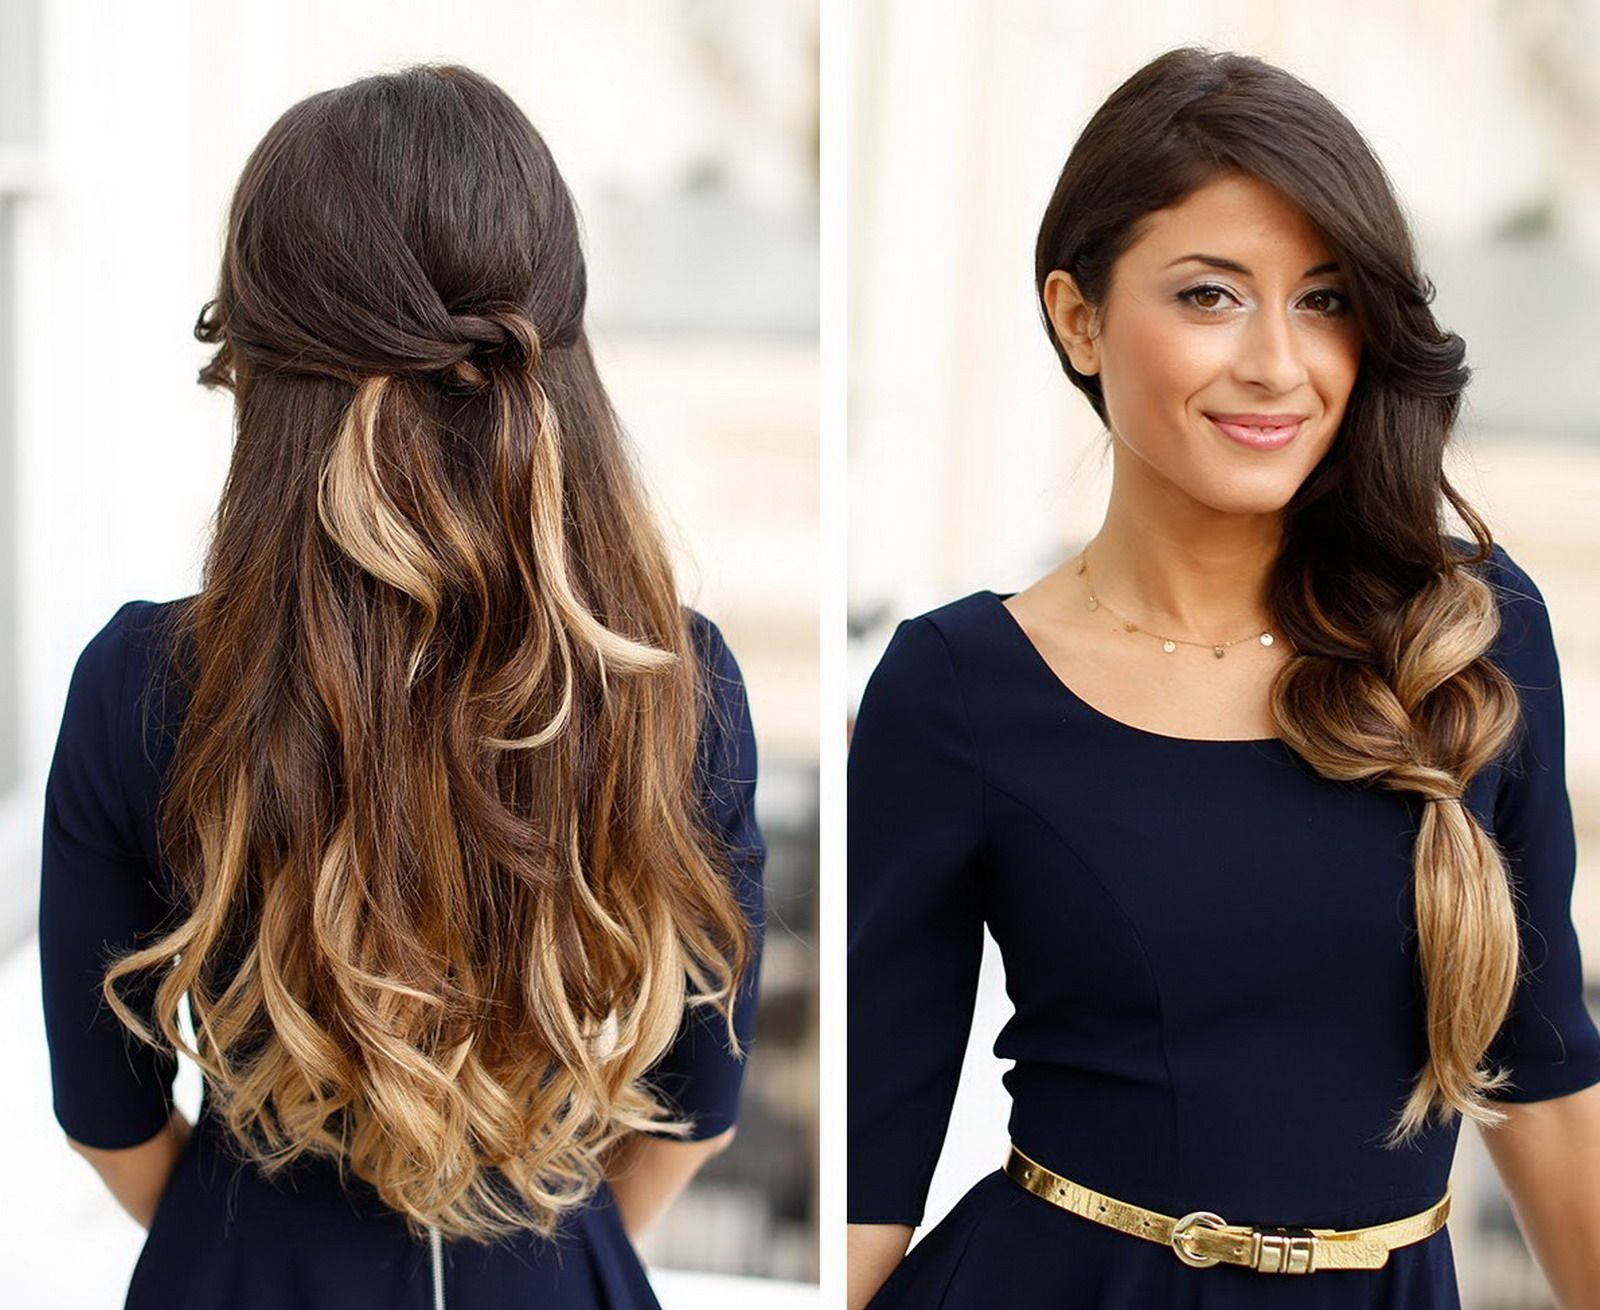 Have Trend Hair Styling With ArganRain Hair Care Products - Styling long hair